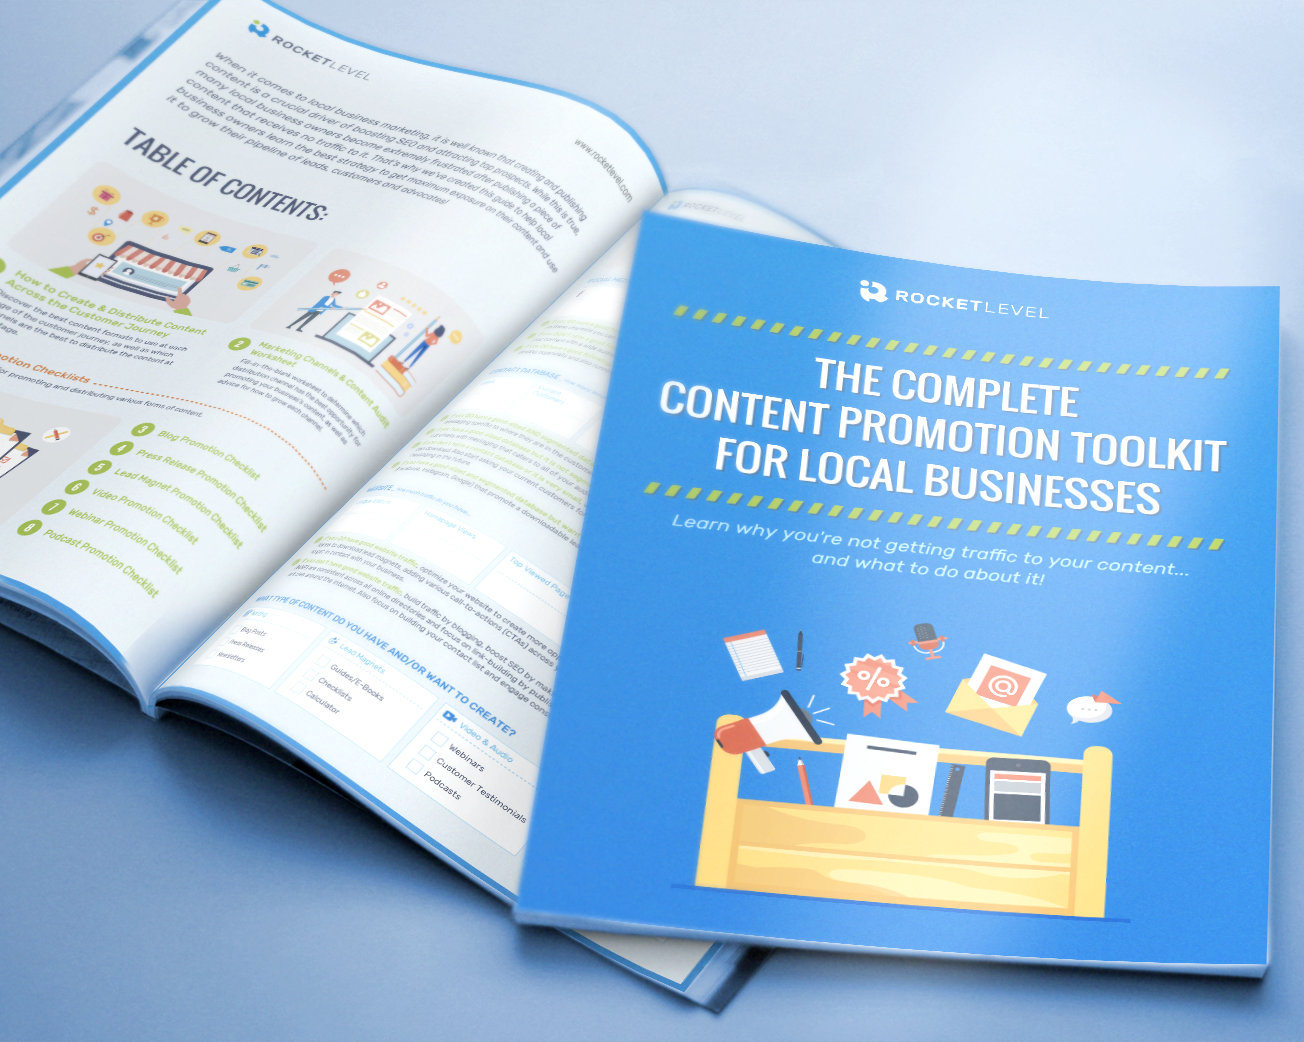 The Content Promotion Toolkit for Local Businesses